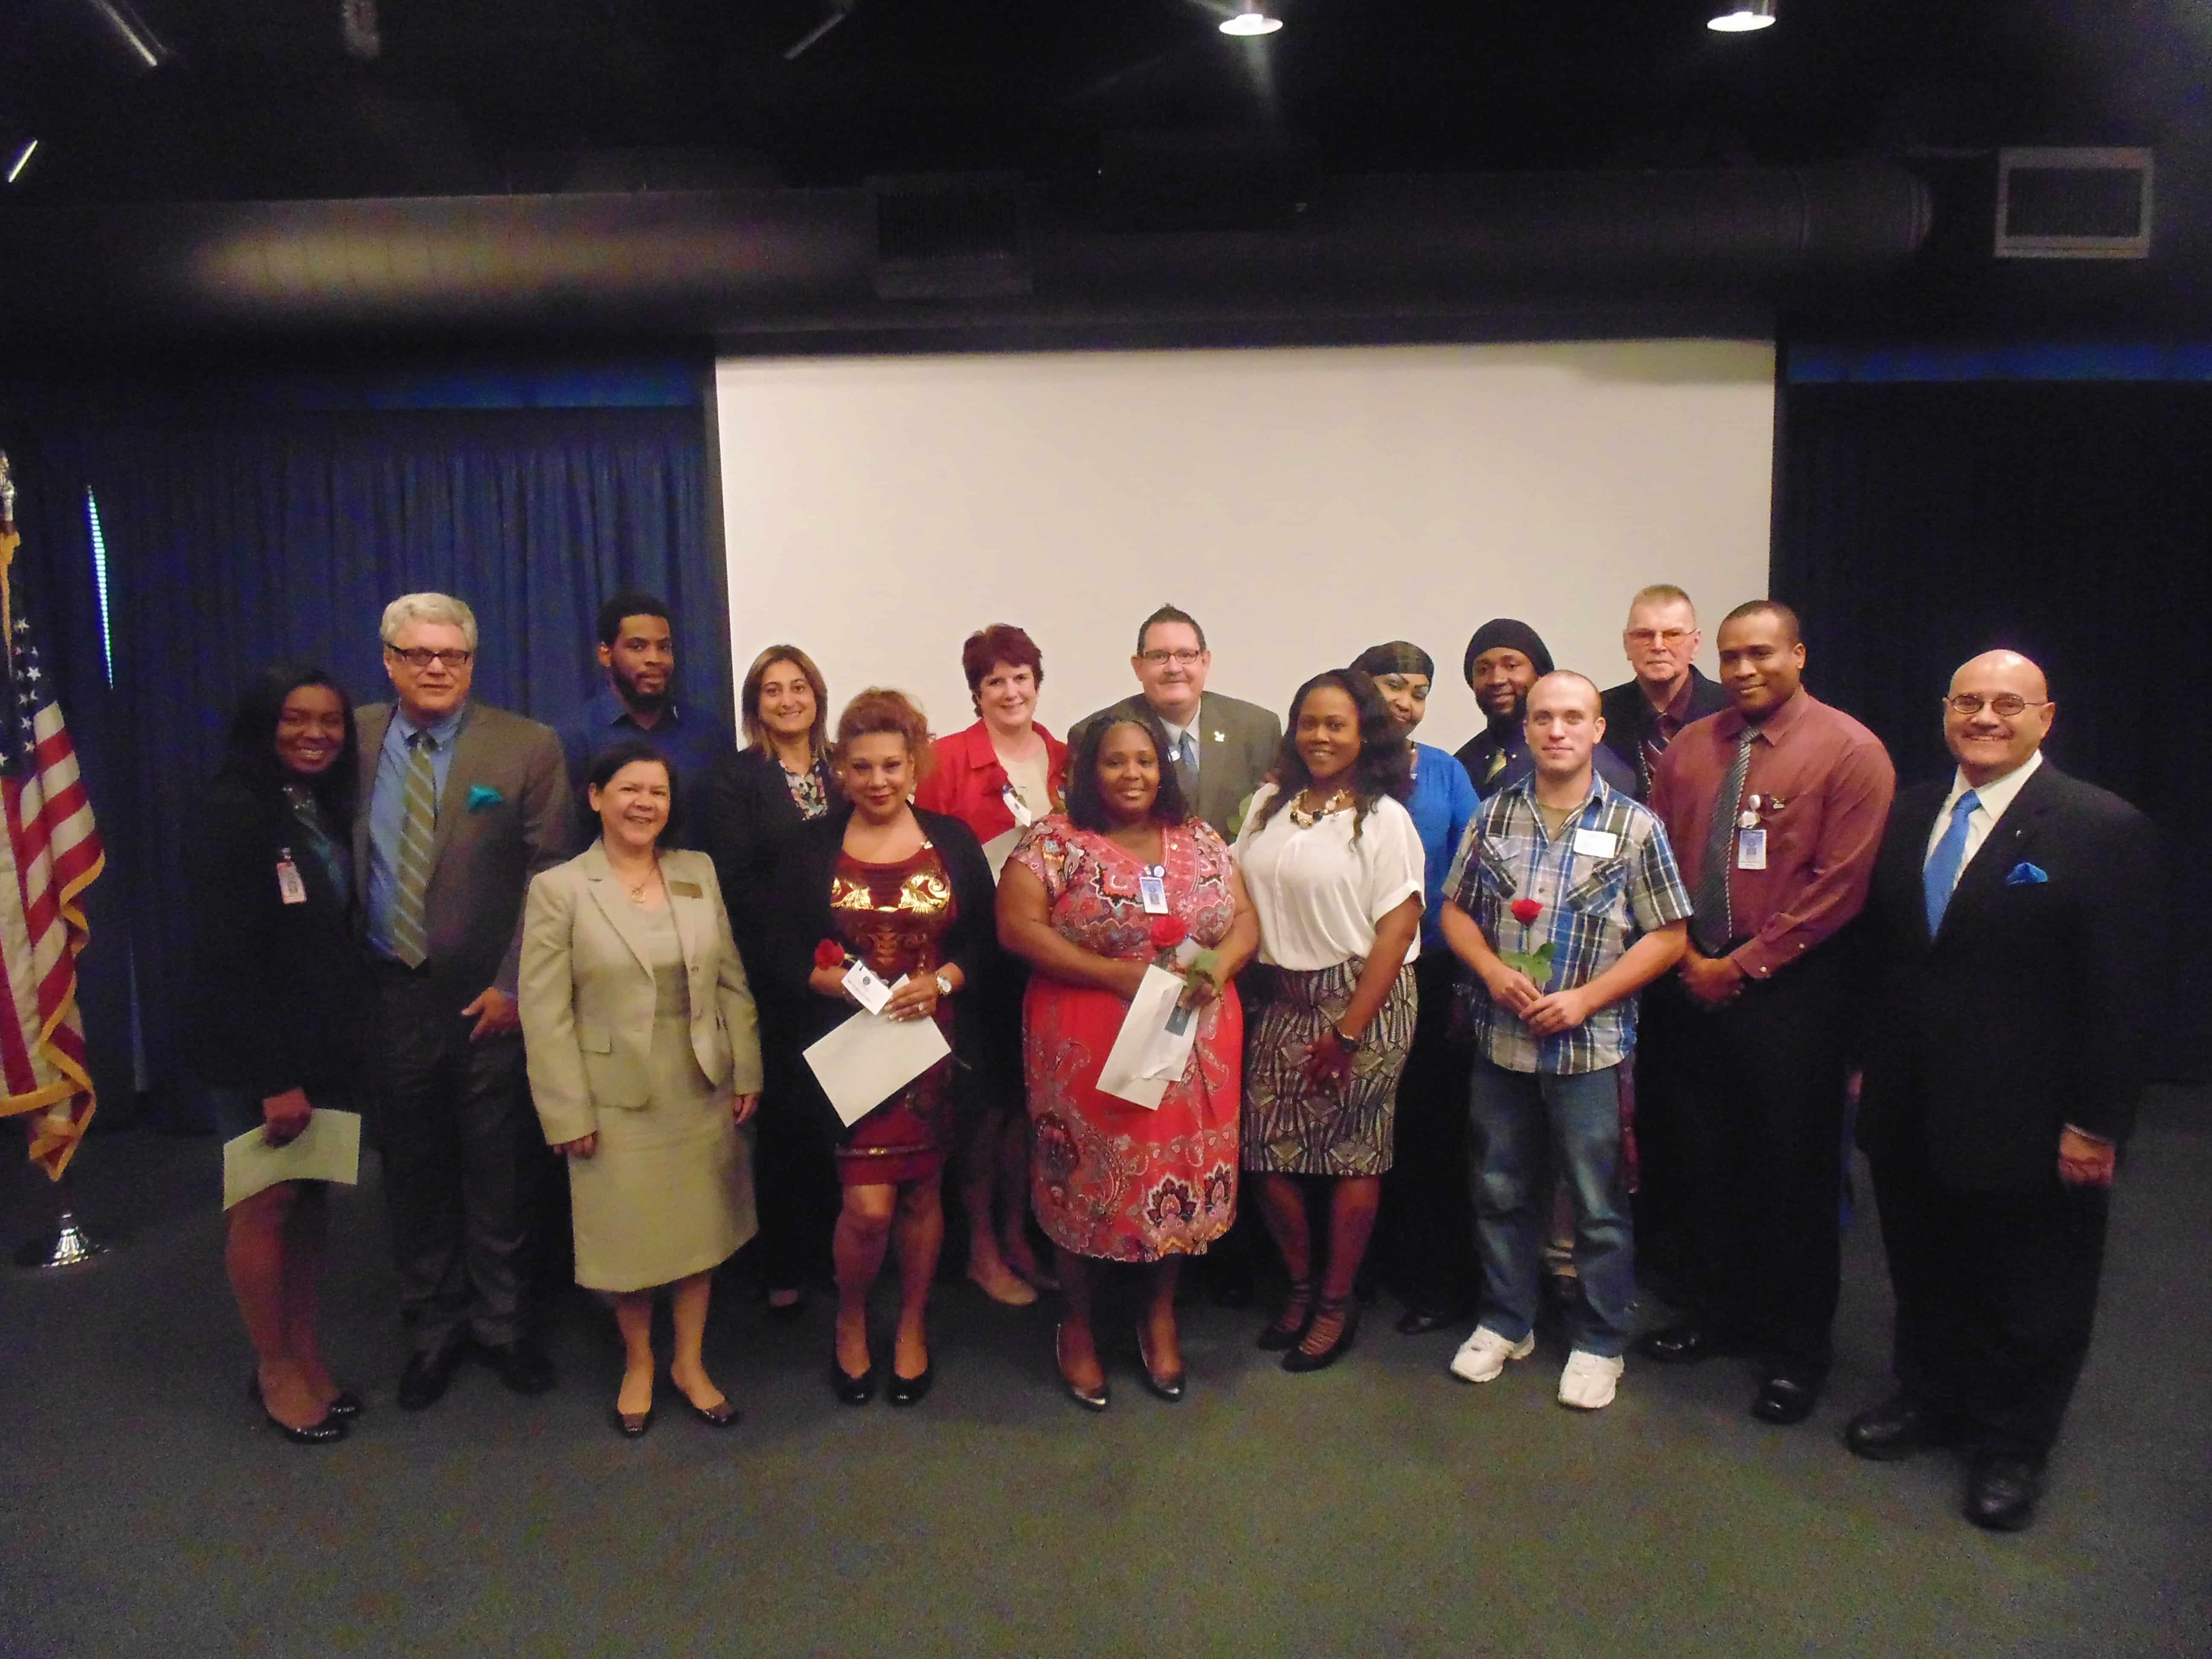 Ft. Lauderdale Hosted the First Ever Eagles Club Pinning Ceremony